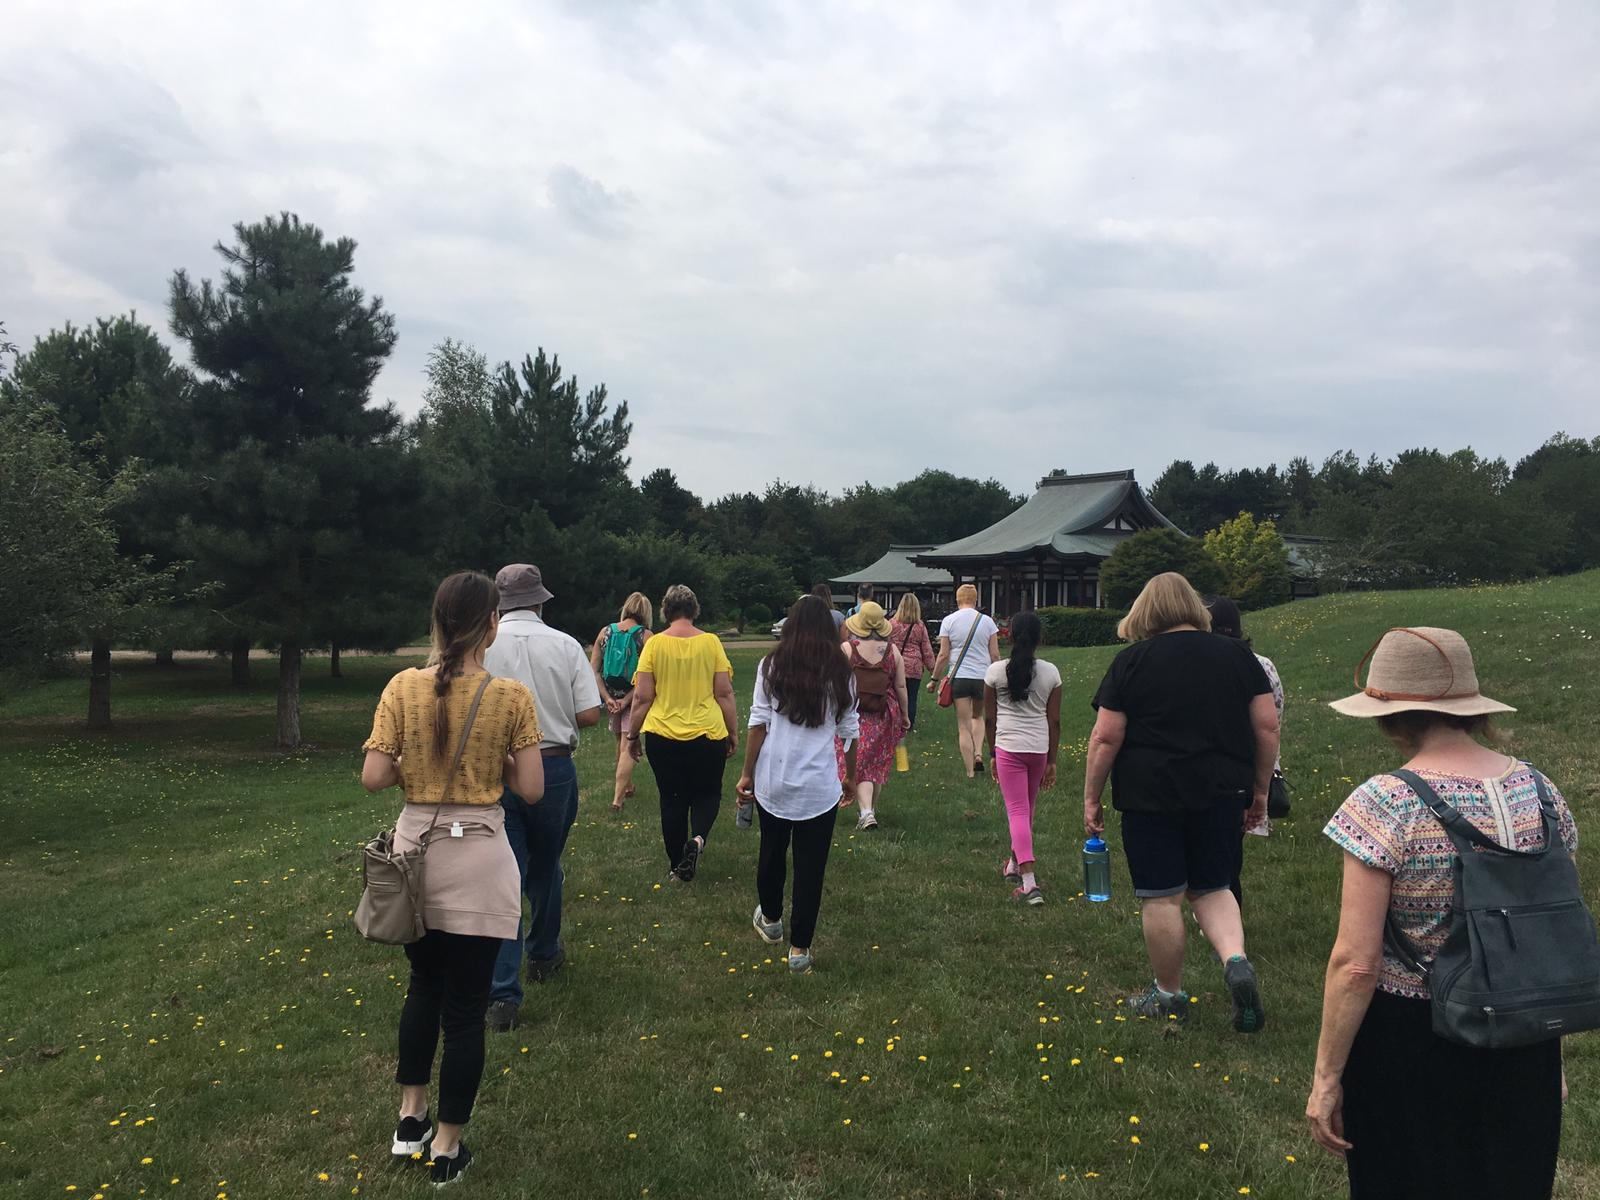 mindful walking at the peace pagoda 2020